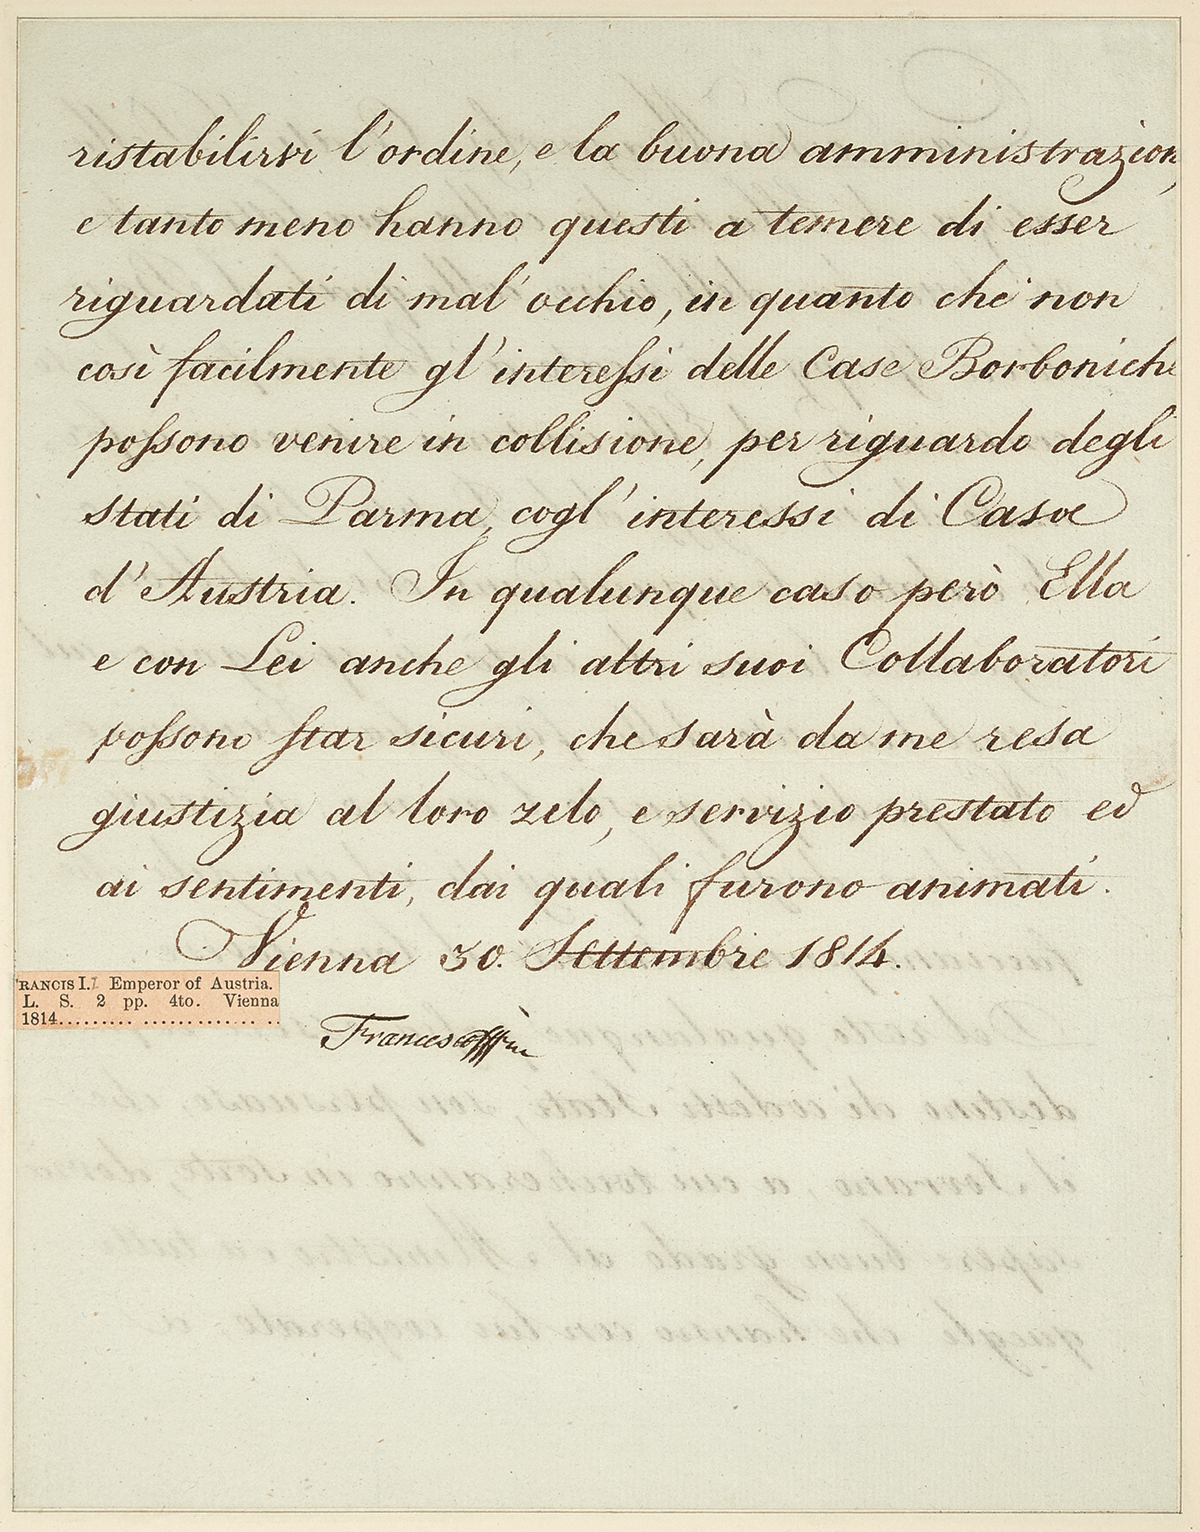 FRANZ-I;-EMPEROR-OF-AUSTRIA-Letter-Signed-Frances-as-Emperor-to-Count-Magawly-Cerati-in-Italian